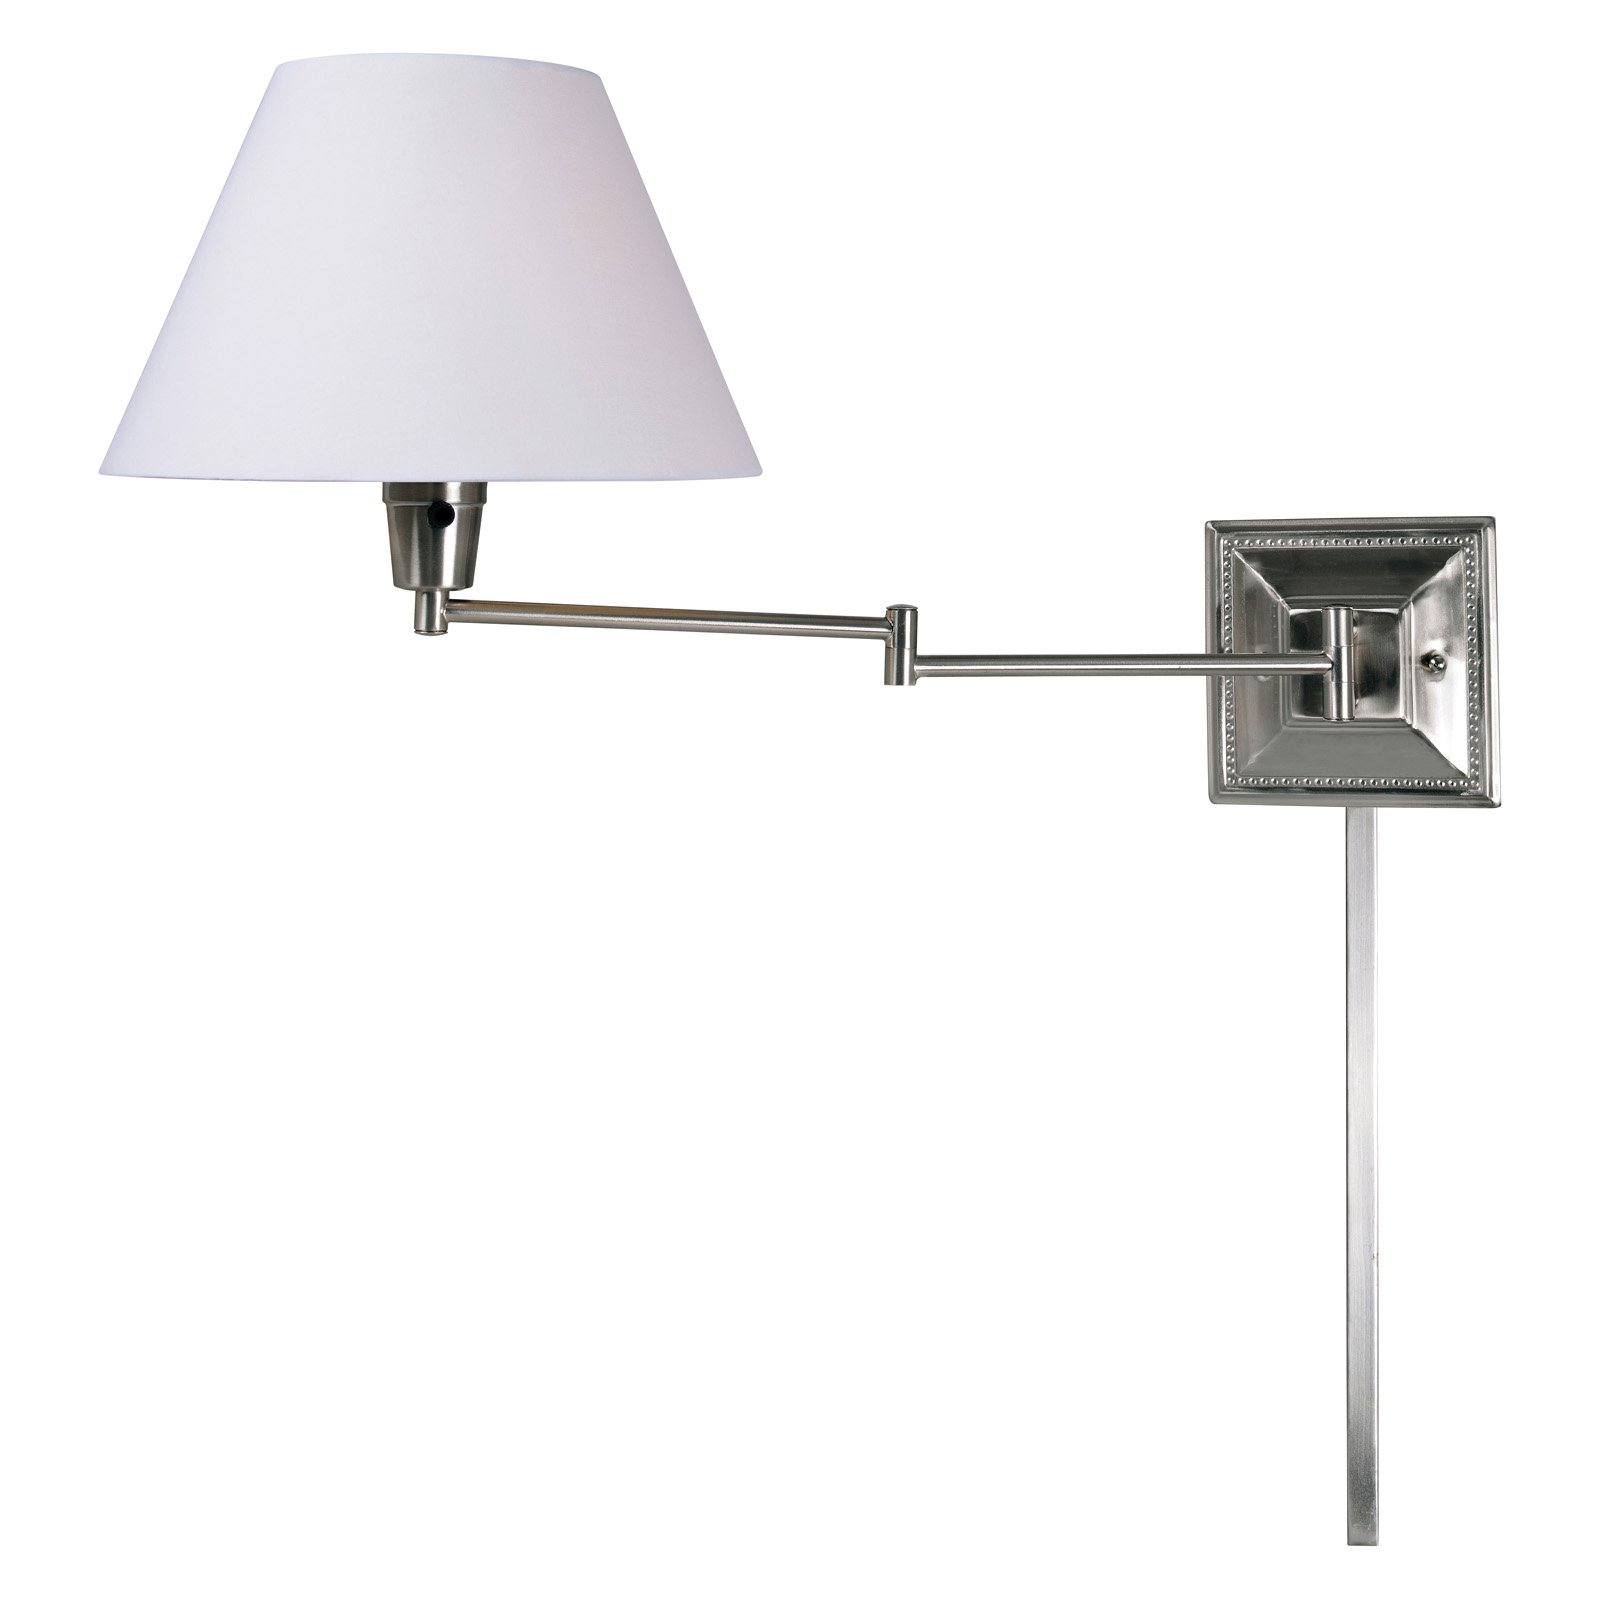 Kenroy Home Denman Brushed Steel Wall Swing Arm Lamp by Kenroy Home